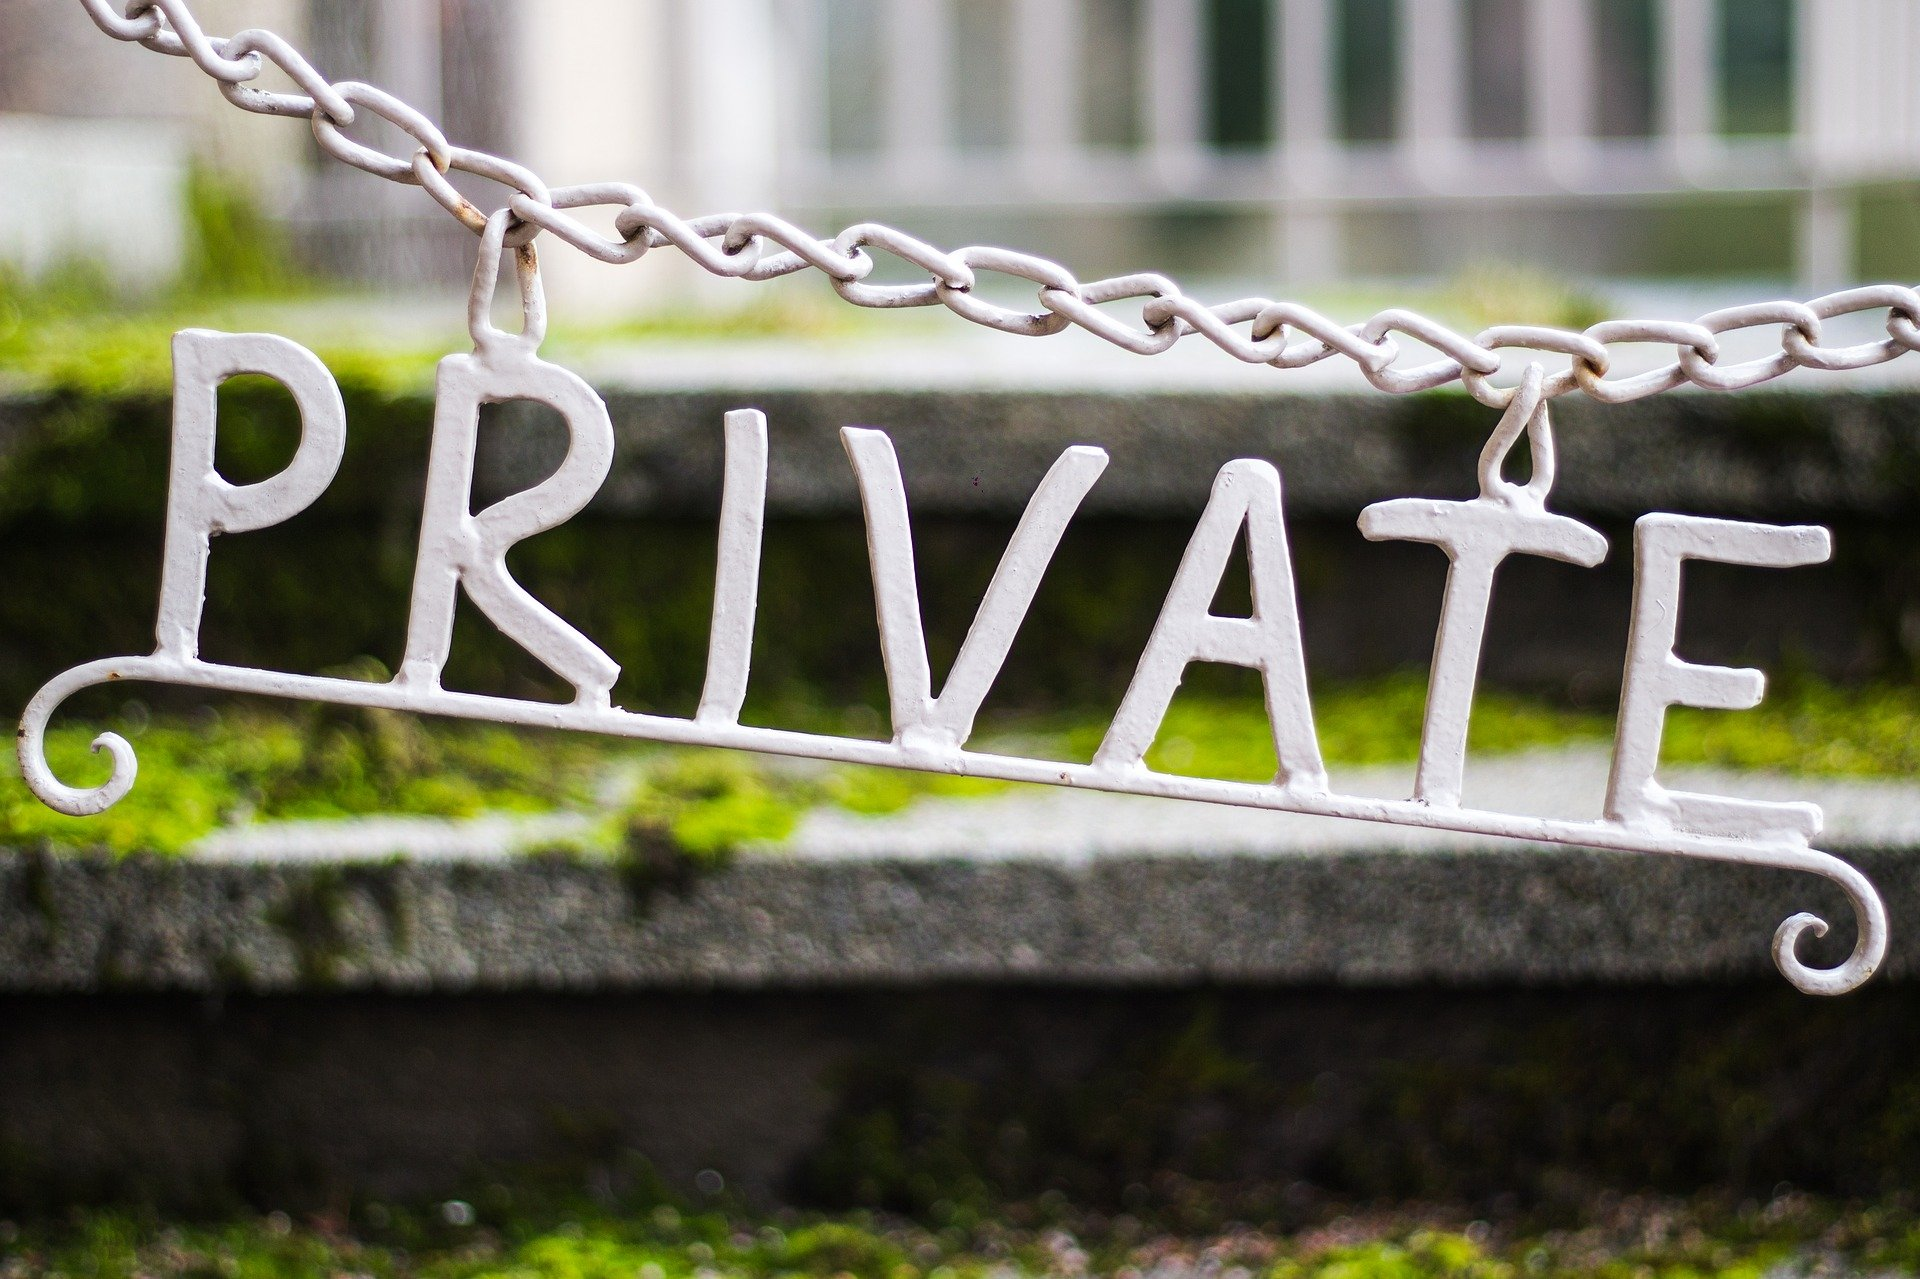 A privacy sign to keep outsiders away.   Source: Pixabay.